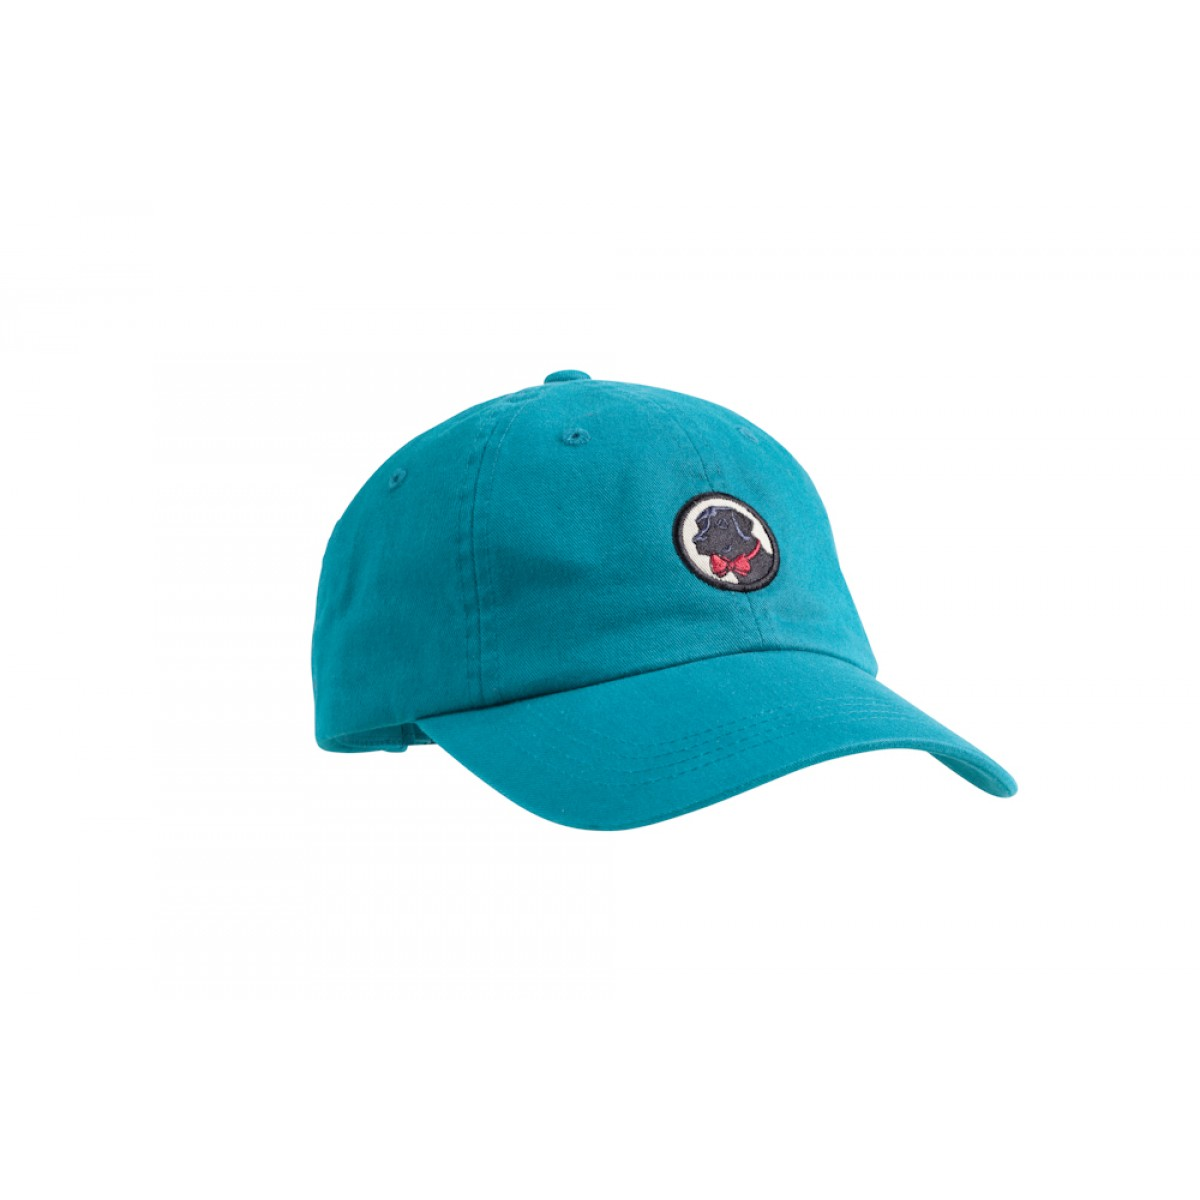 Frat Hat: Retro Blue